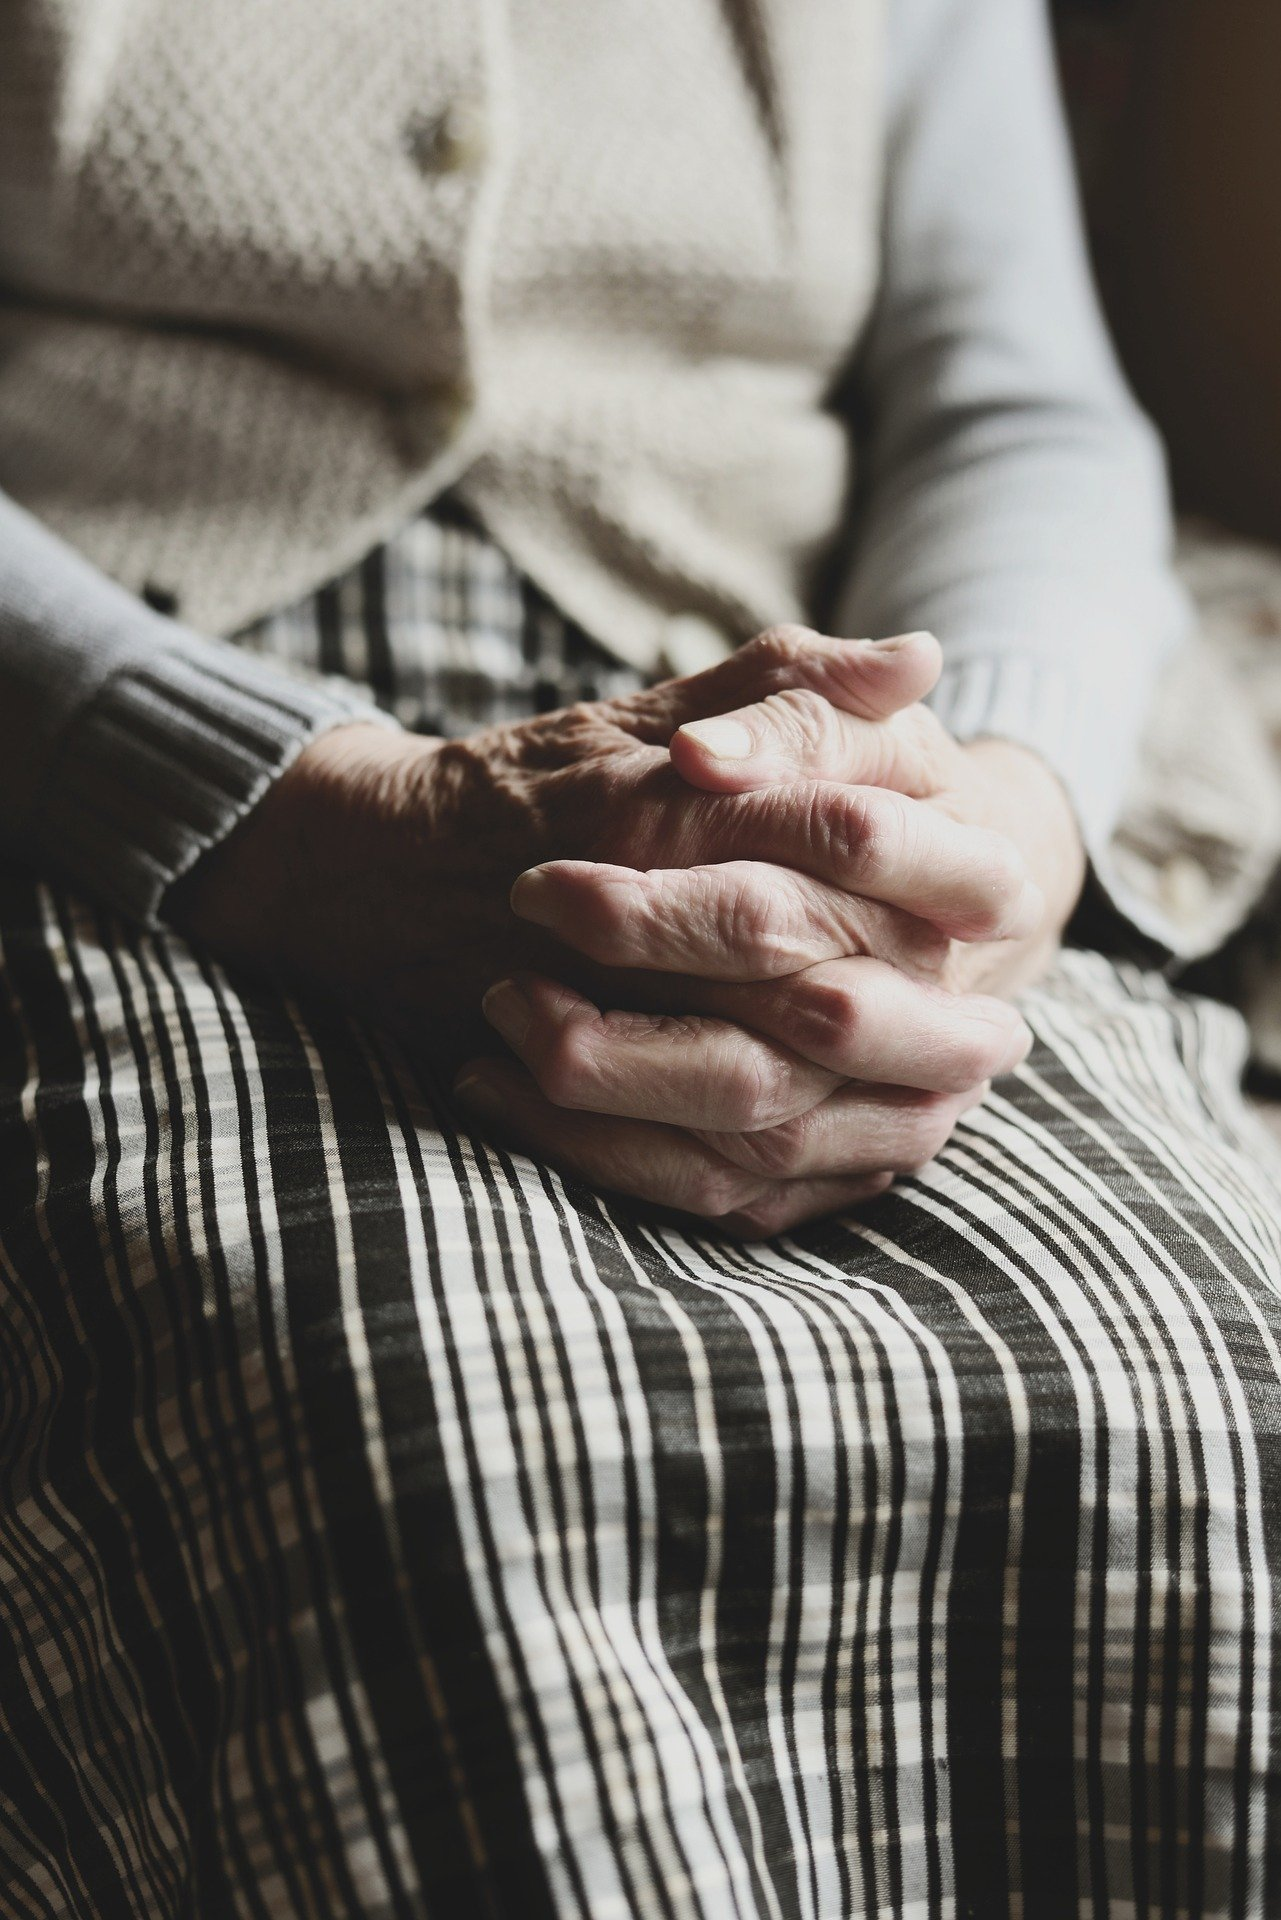 An old woman sitting with her hands clasped together   Photo: Pixabay/congerdesign